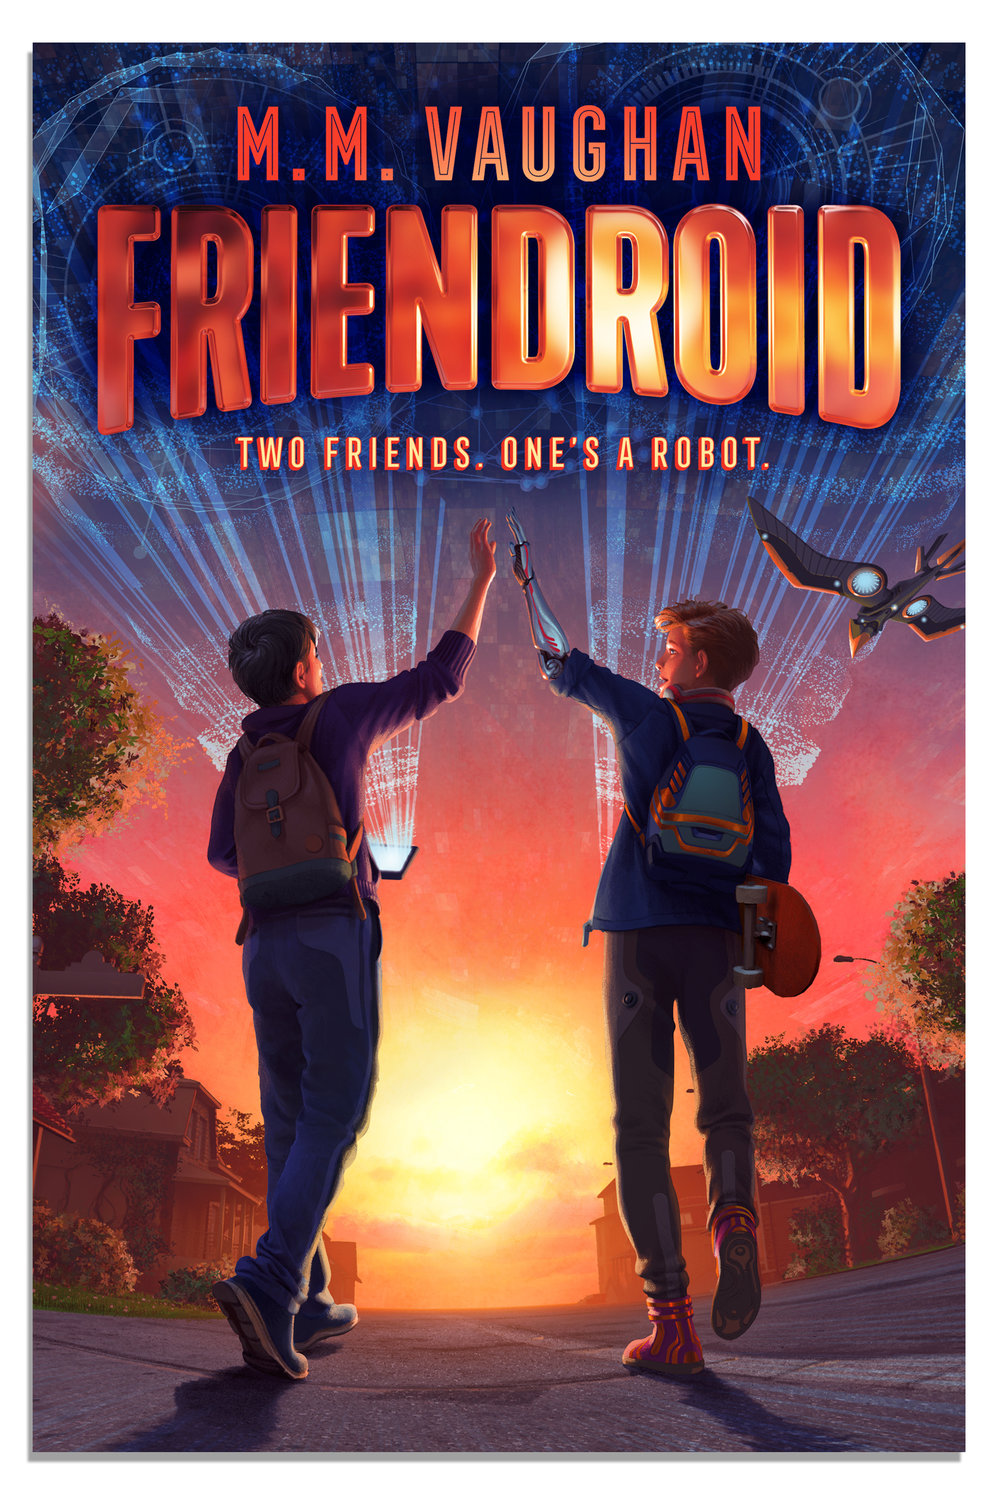 FRIENDROID  (USA & CANADA) SIMON & SCHUSTER 2019